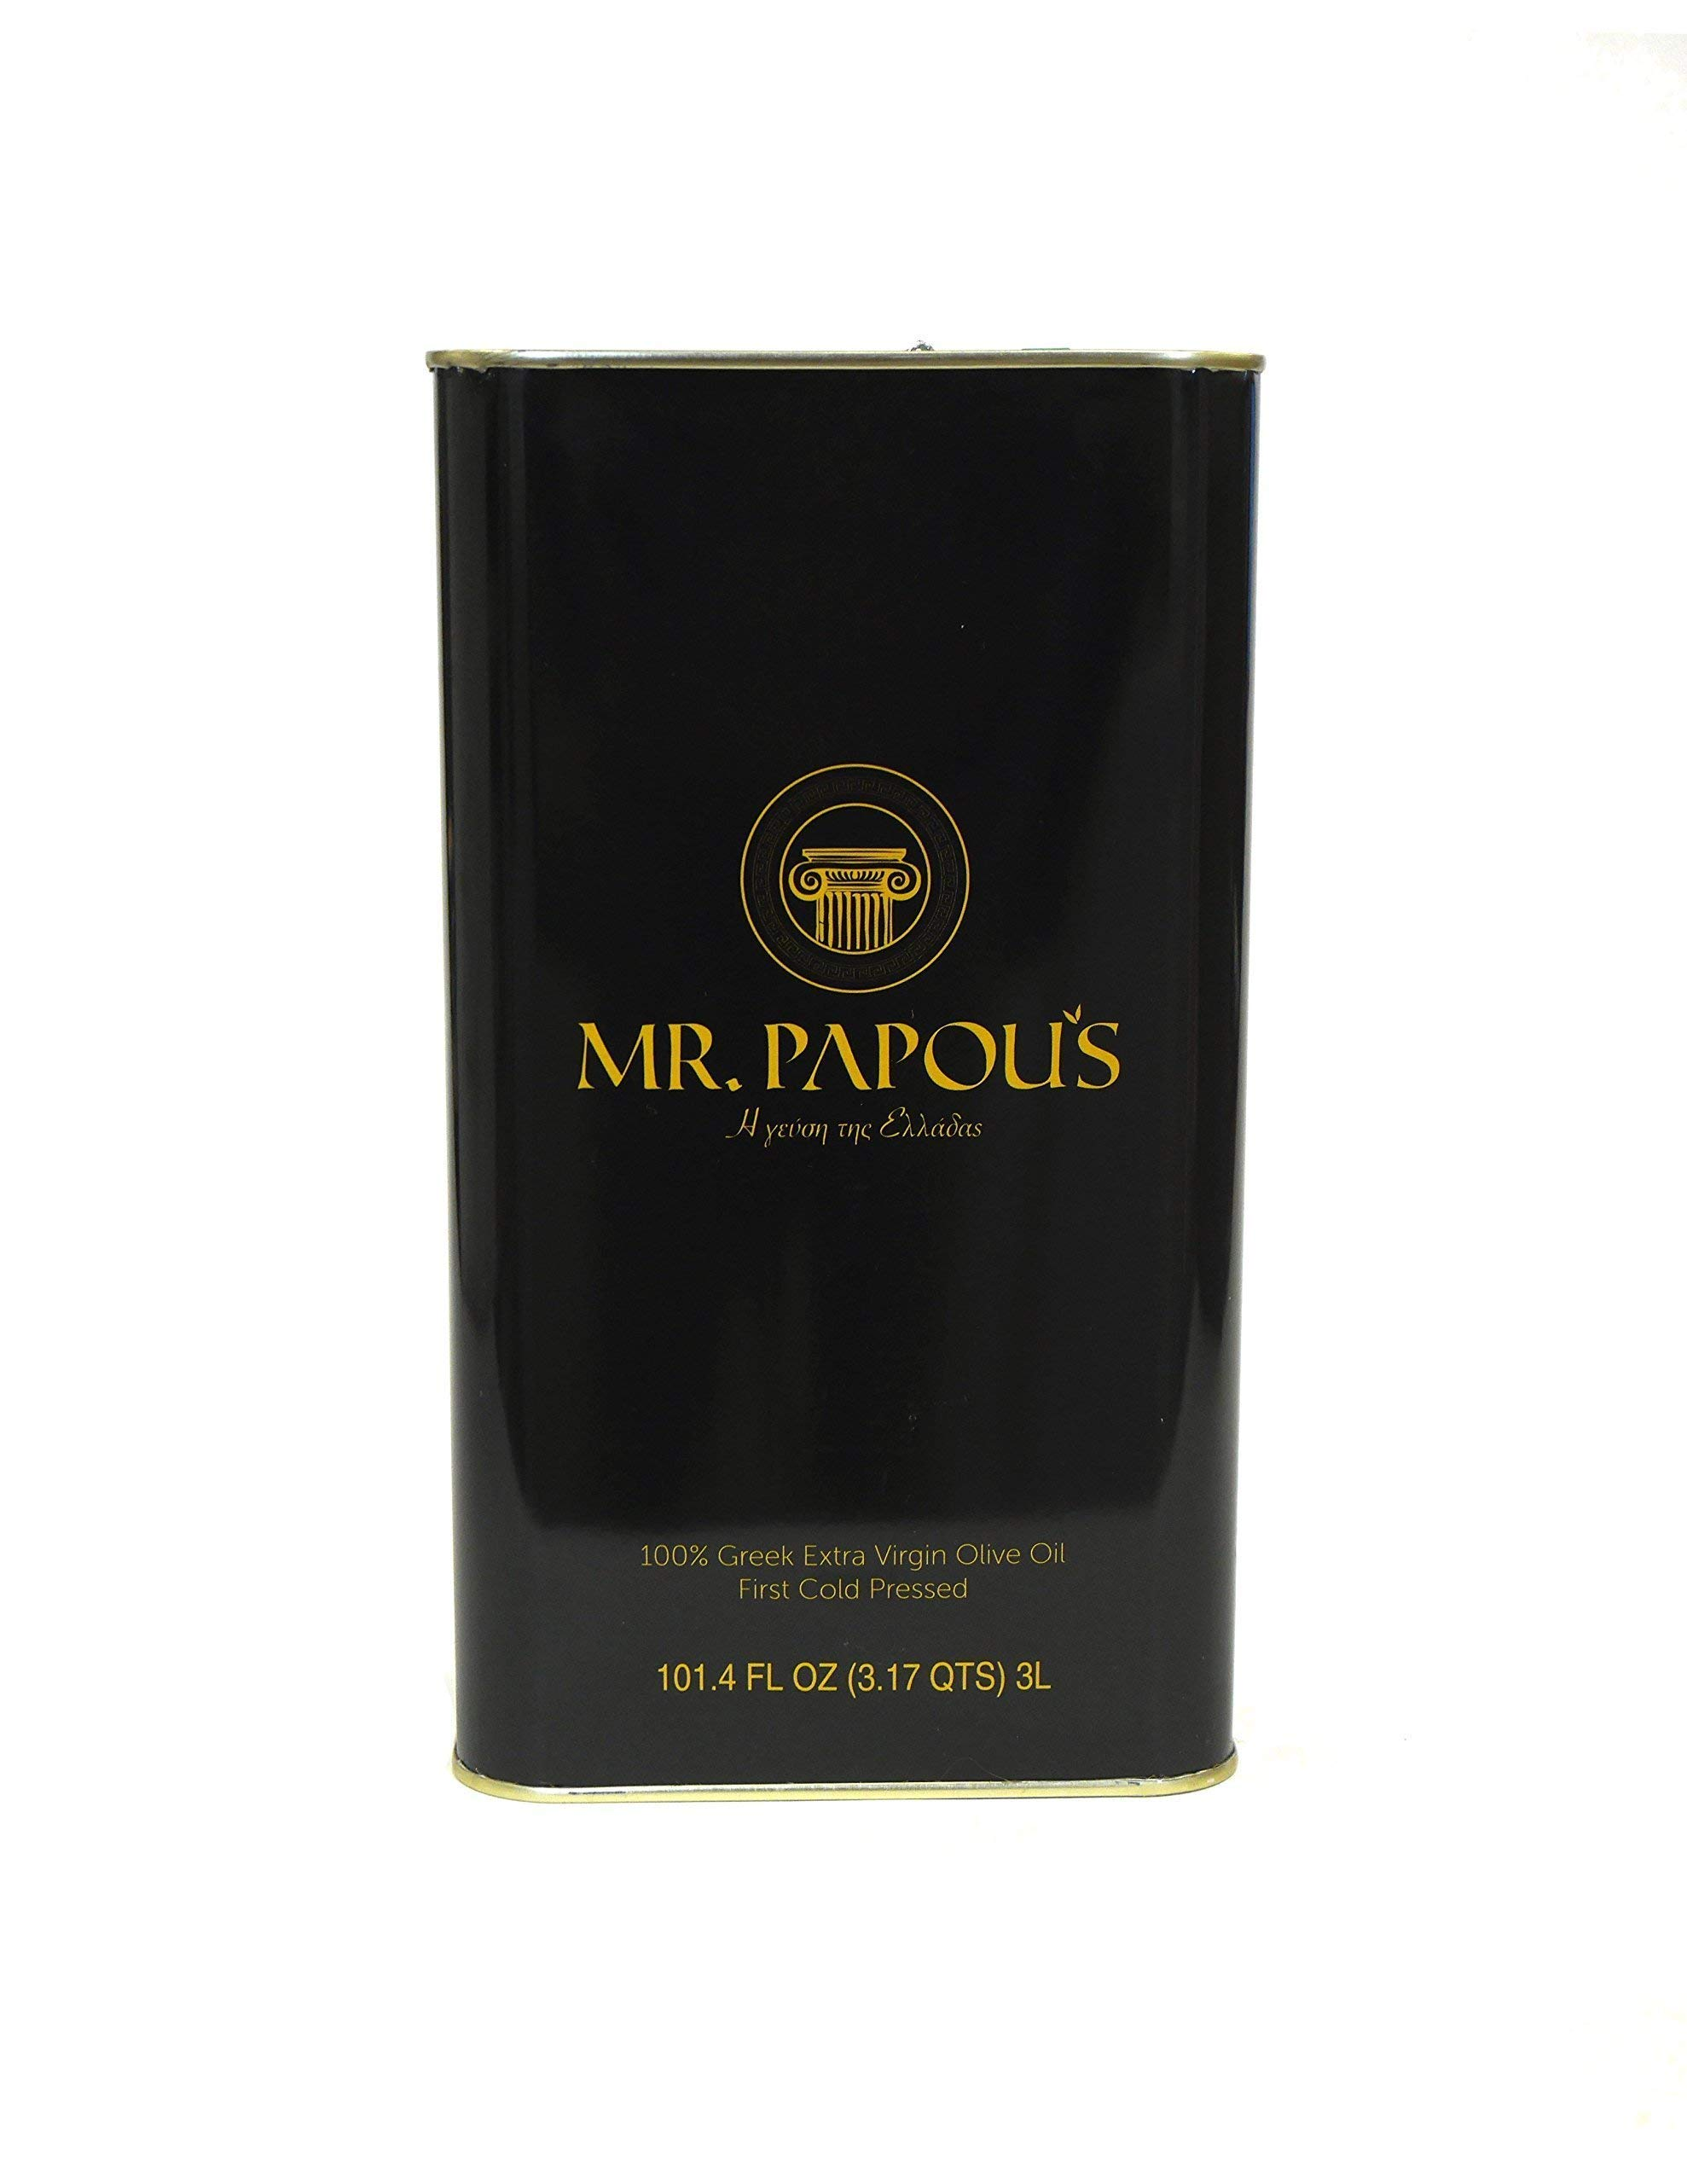 Mr. Papou's | Extra Virgin Olive Oil | First Cold Pressed | Family Owned | Harvested in Corinth, Greece | 3 Liter - 101.4 fl oz by Mr. Papou's (Image #5)